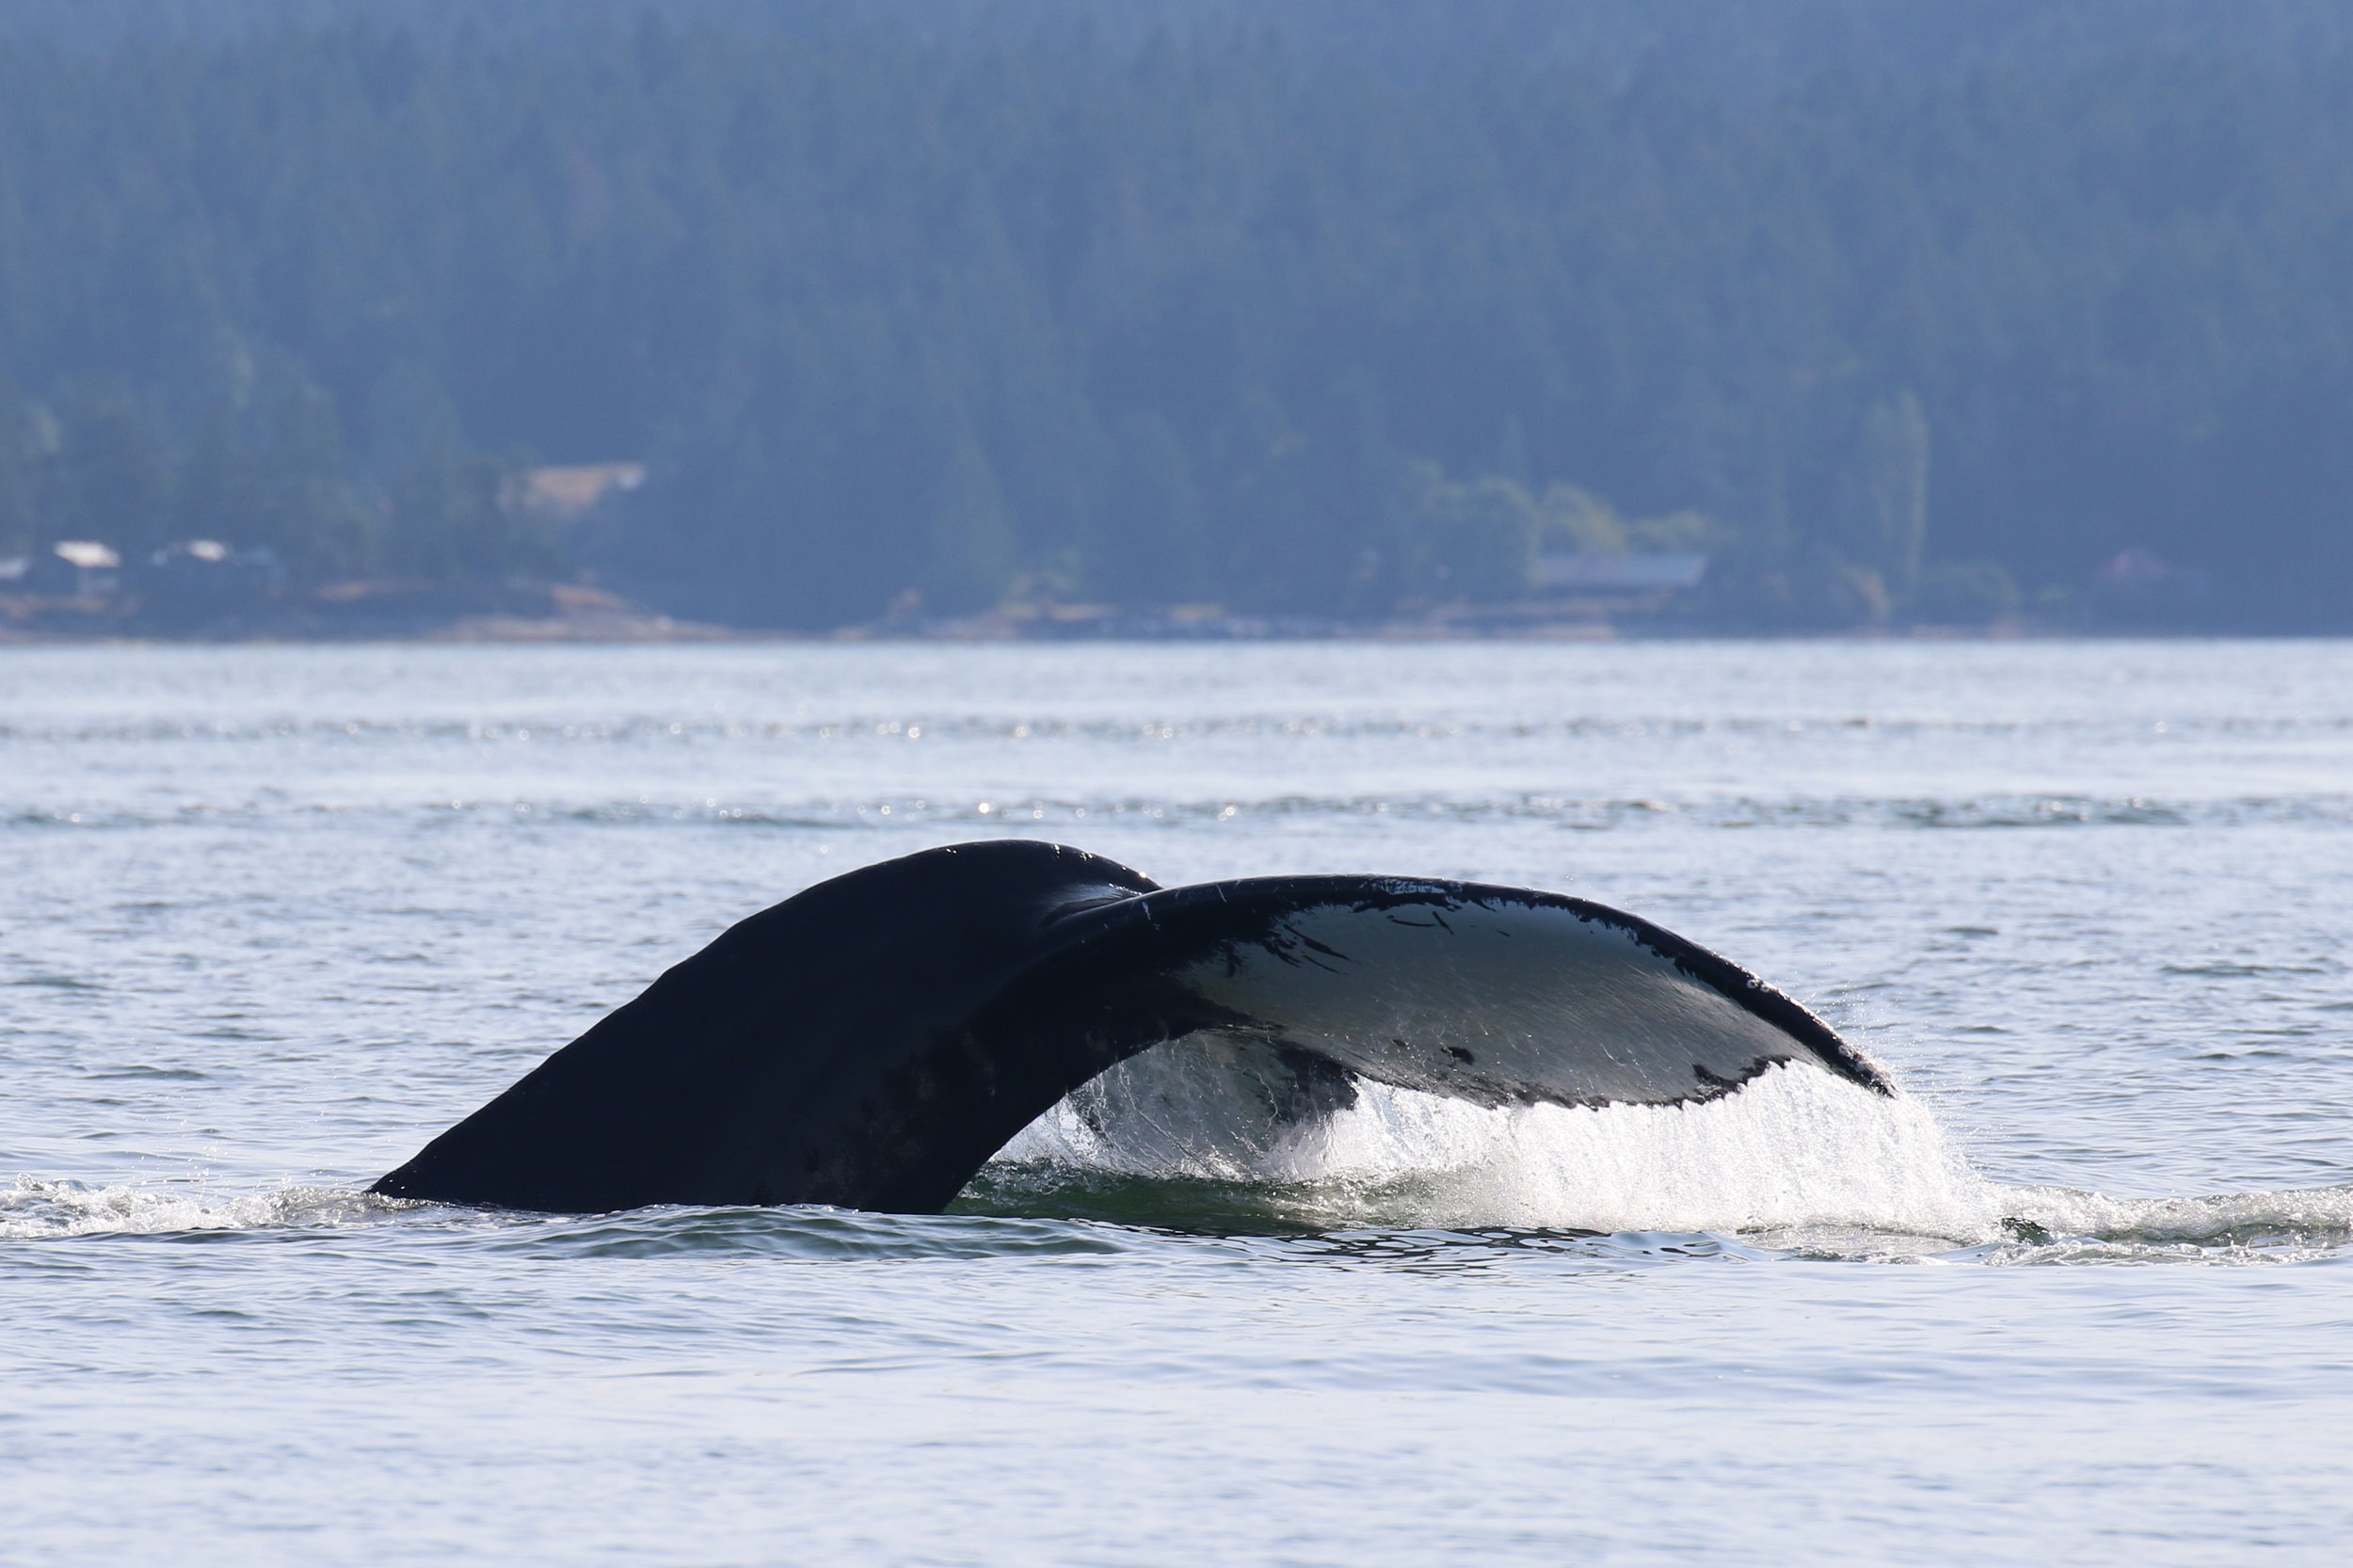 Two Spot going for a dive! You can see the black spots on the fluke that this whale is named for. Photo by Val Watson.